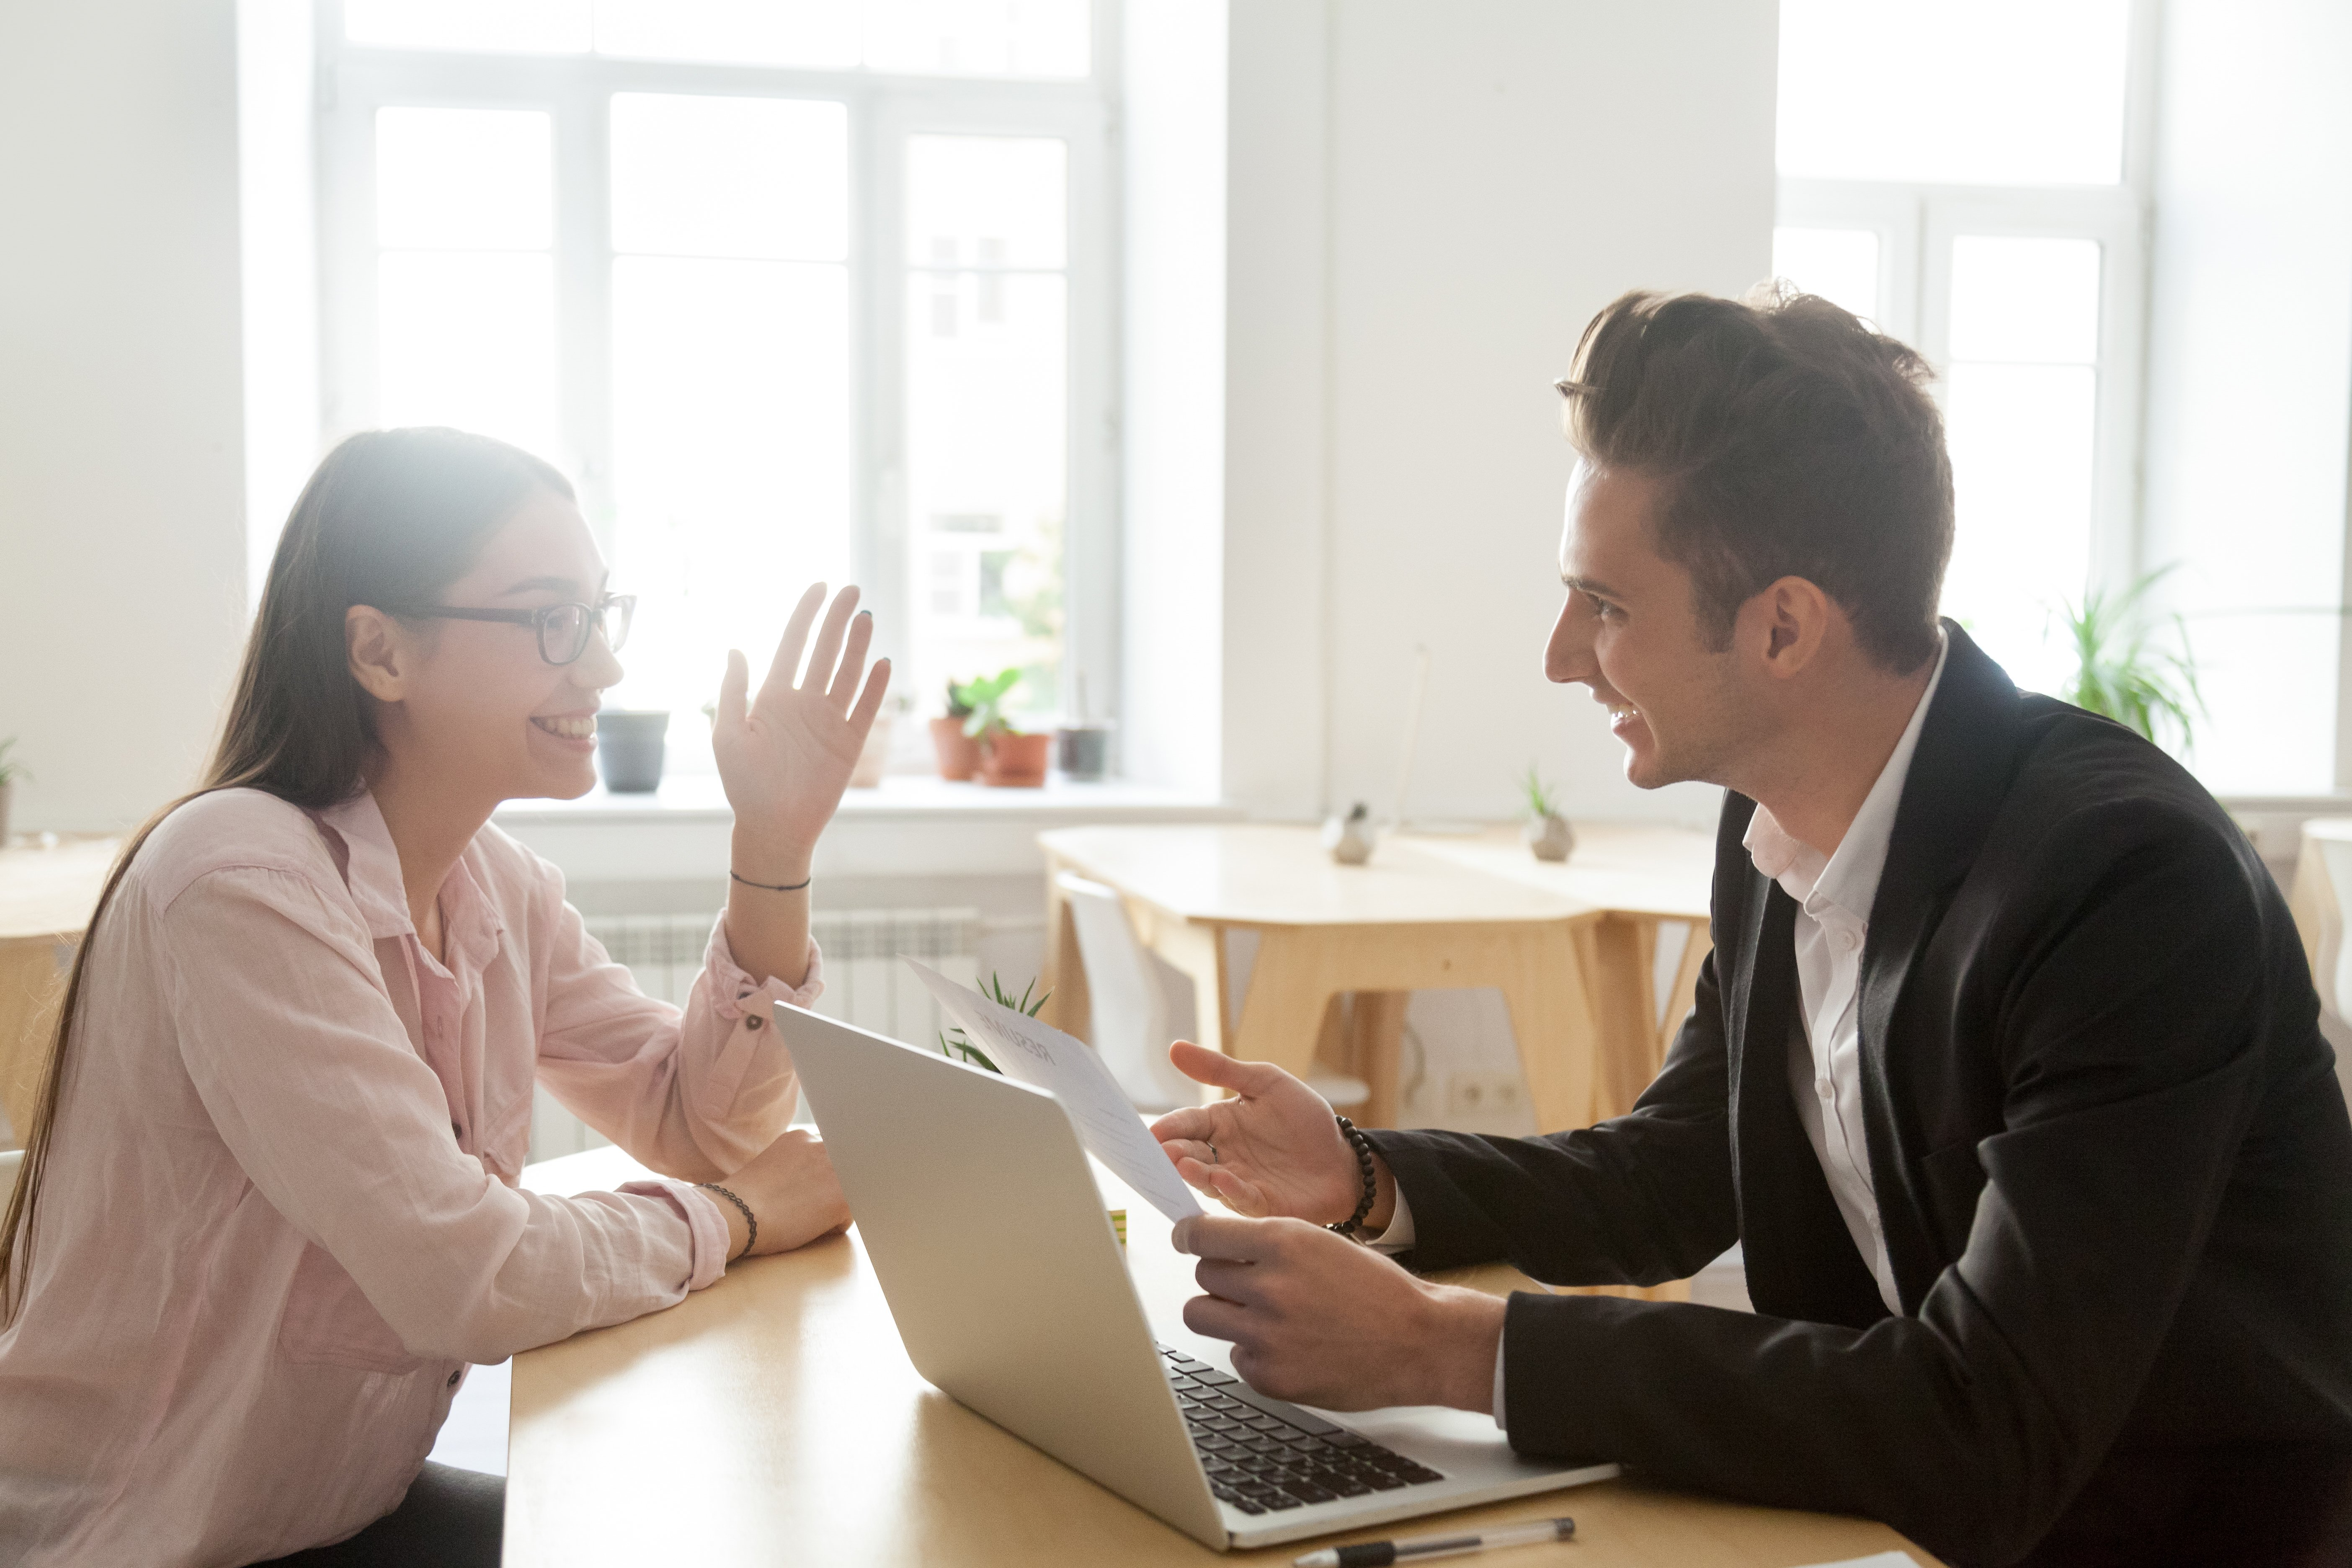 20 Questions You Should Ask in an Interview